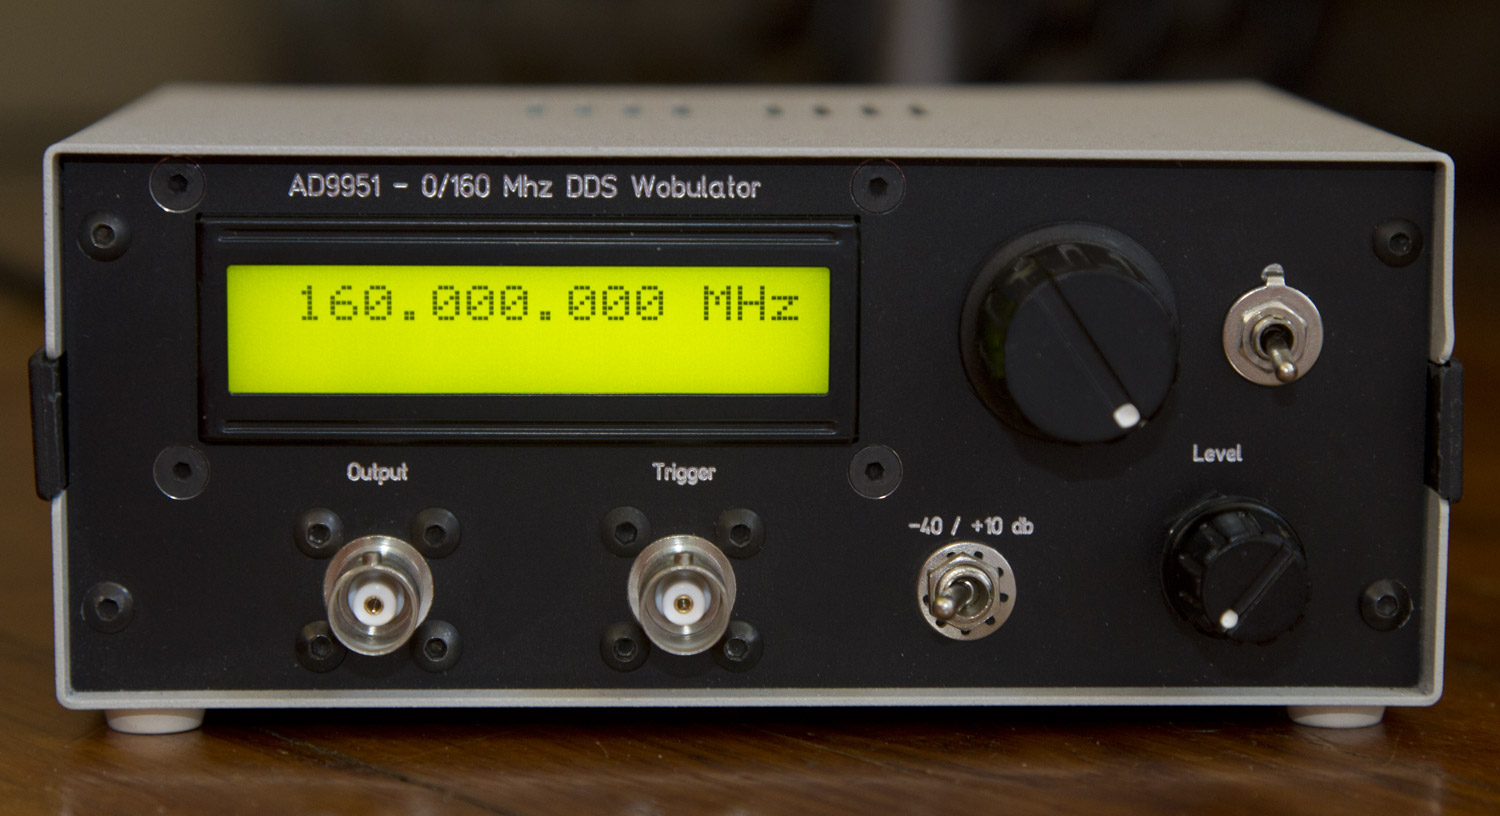 DDS AD9951 - 0/160 Mhz Wobulator [Update 11/07]